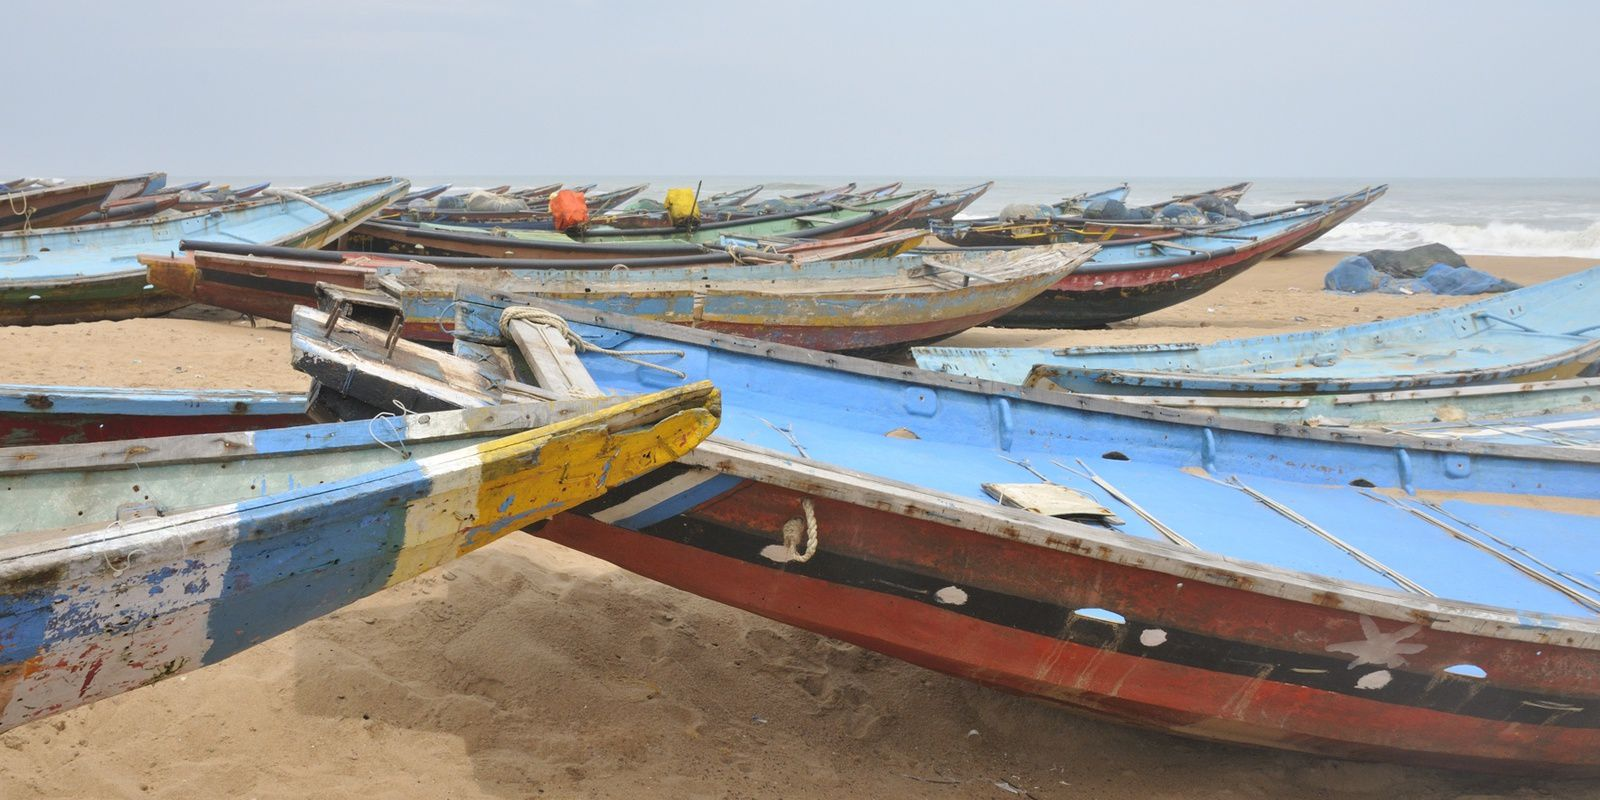 Chandrabhaga beach - India - juil 18